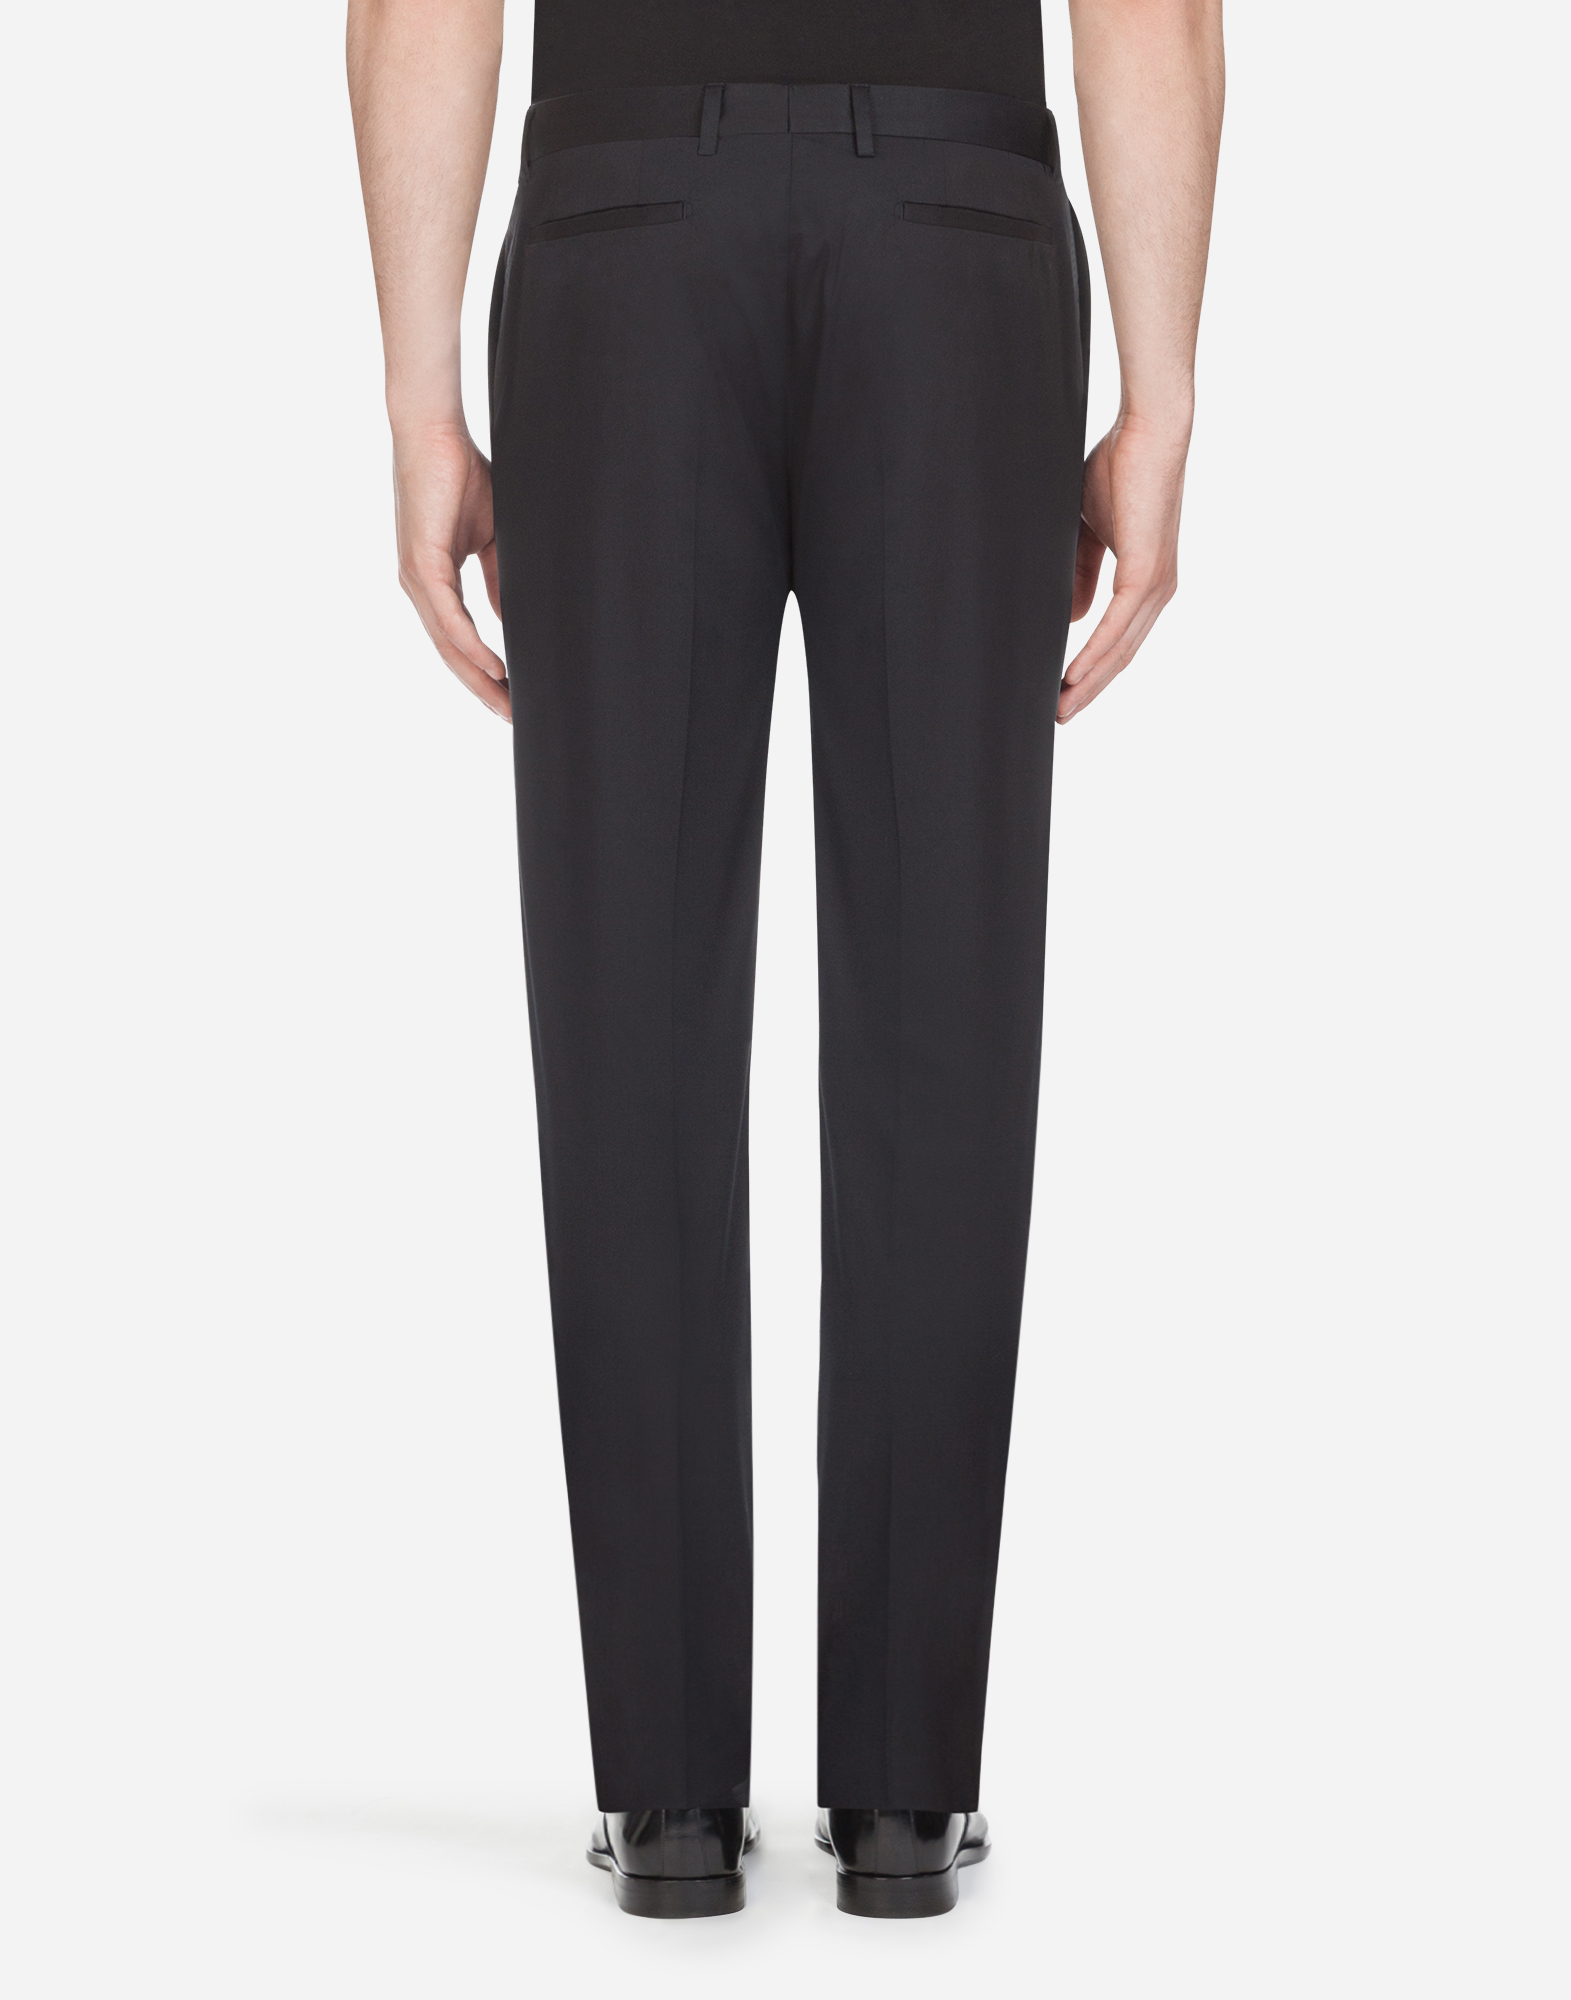 Dolce & Gabbana COTTON PANTS